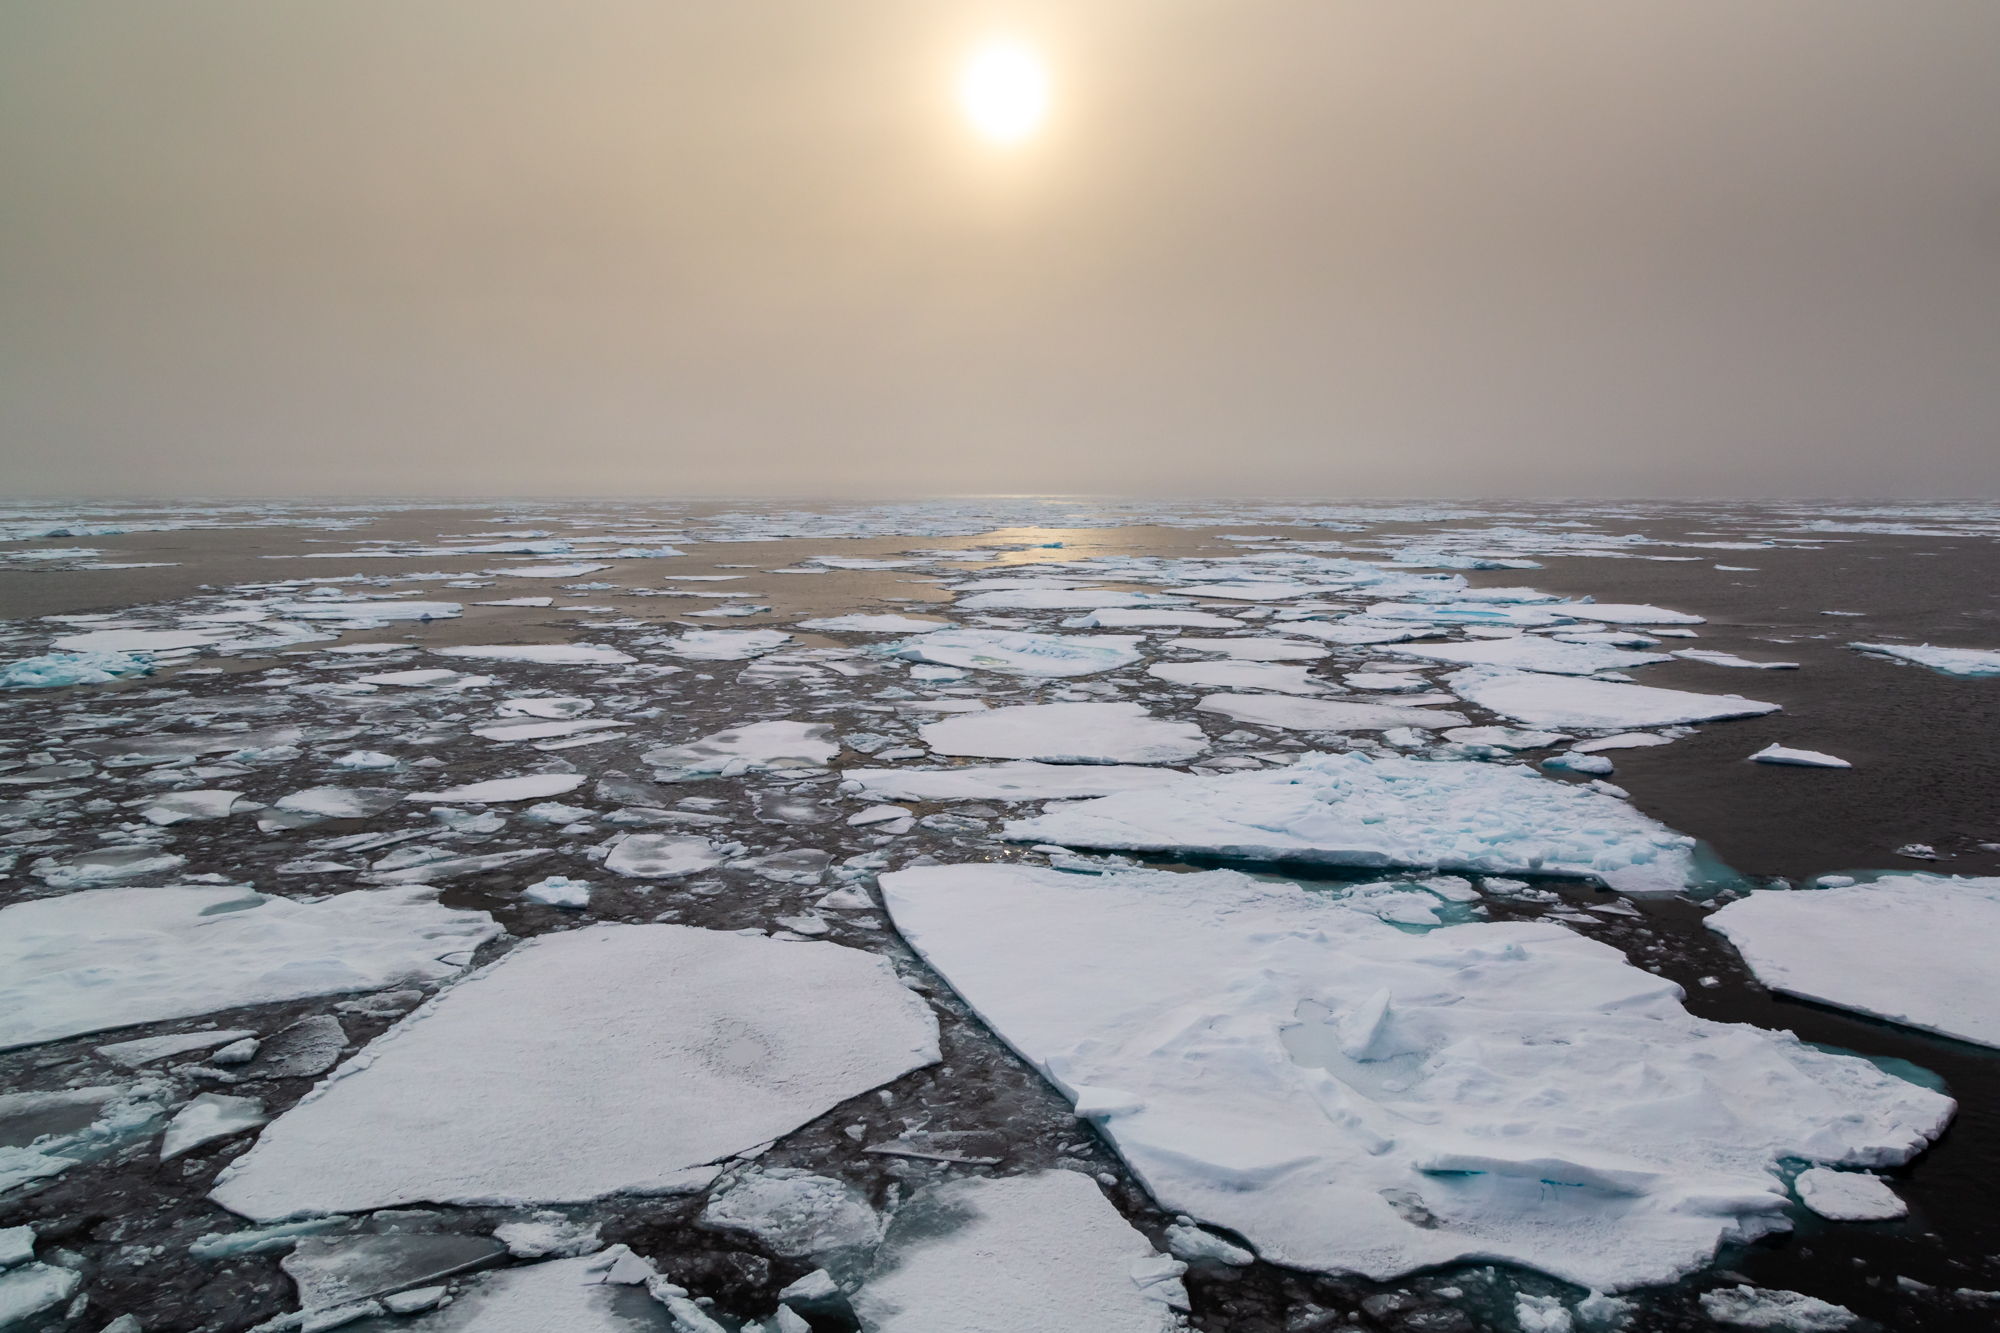 "When many imagine sea ice, people think of a towering mass of ancient and thick ice - like a giant glacier floating on the ocean. In reality, however, much of the sea ice is a fragile mix of these thin ""islands"" that merge or break as they float on the surface of the Arctic Ocean. As the Arctic warms, an increasingly small portion of the ice lasts longer than a single year. The summer breakup and melt now clears most the ice formed the previous winter - and more. Sea ice is dynamic, making it especially fragile in the face of climate change. Like a dance, the ice is constantly in motion as the tides shift, winds blow and the hot sun shines 24 hours a day. The summer area of sea ice is 40% less than it was just 30 years ago and is heading towards a complete summer disappearance in as little as 20-30 years - but it is not yet too late to save the sea ice. I make pictures and share stories not to serve as a memory of what we could soon lose, but rather to give you all a reason to care about fragile natural worlds that could disappear if too many of us fall into the trap of complacency. If enough people care, I believe anything is possible."